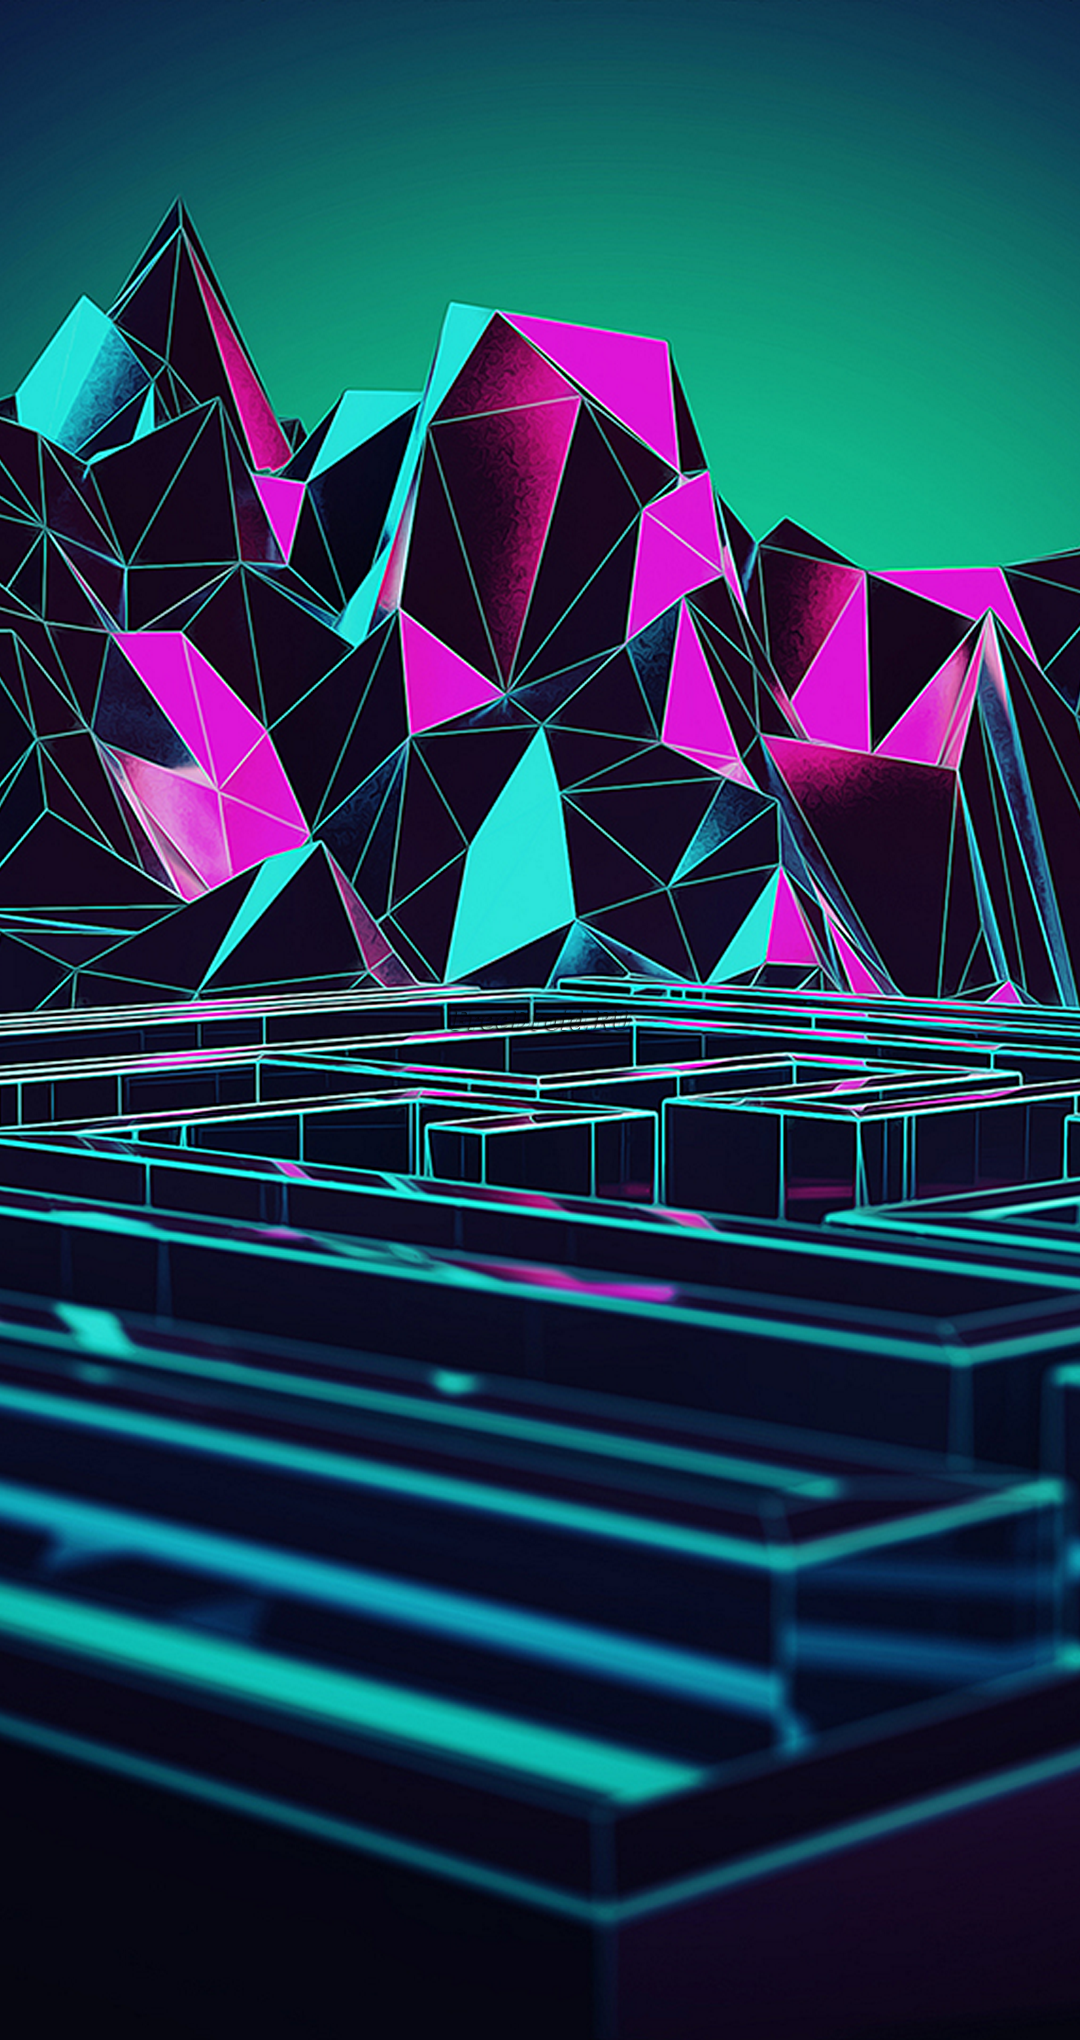 Low Poly wallpaper